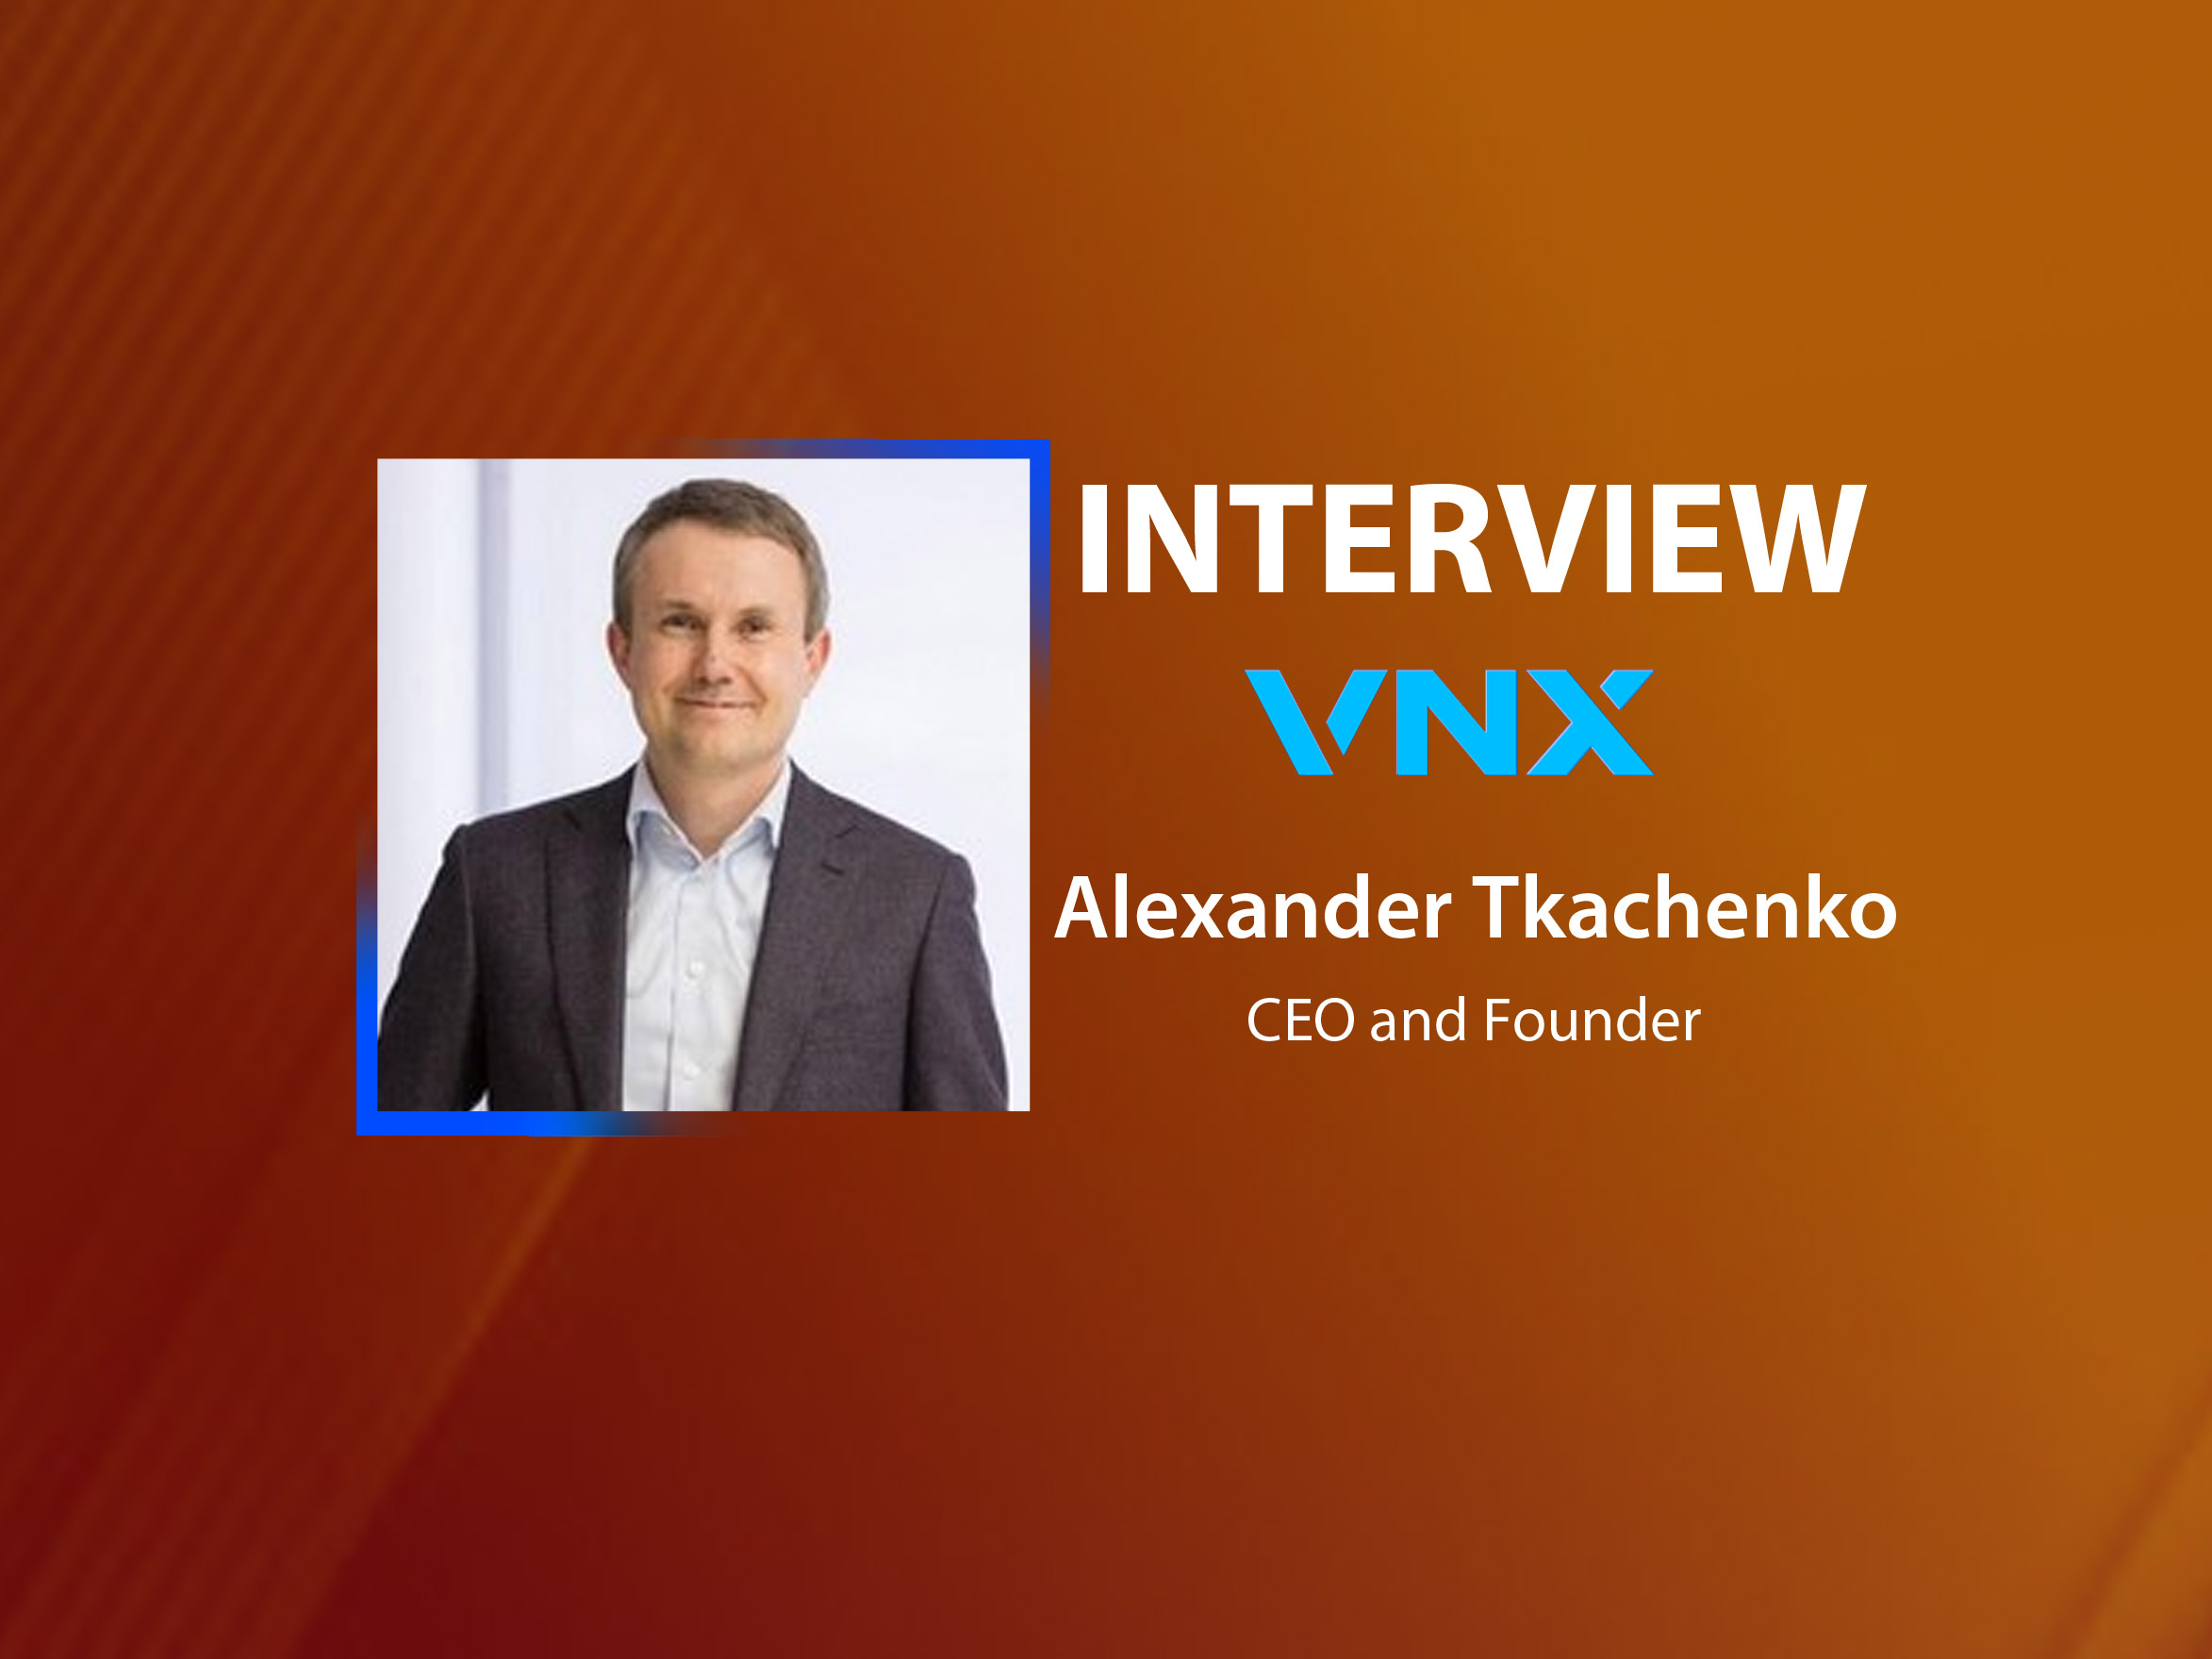 GlobalFintechSeries Interview with Alexander Tkachenko, CEO and Founder at VNX